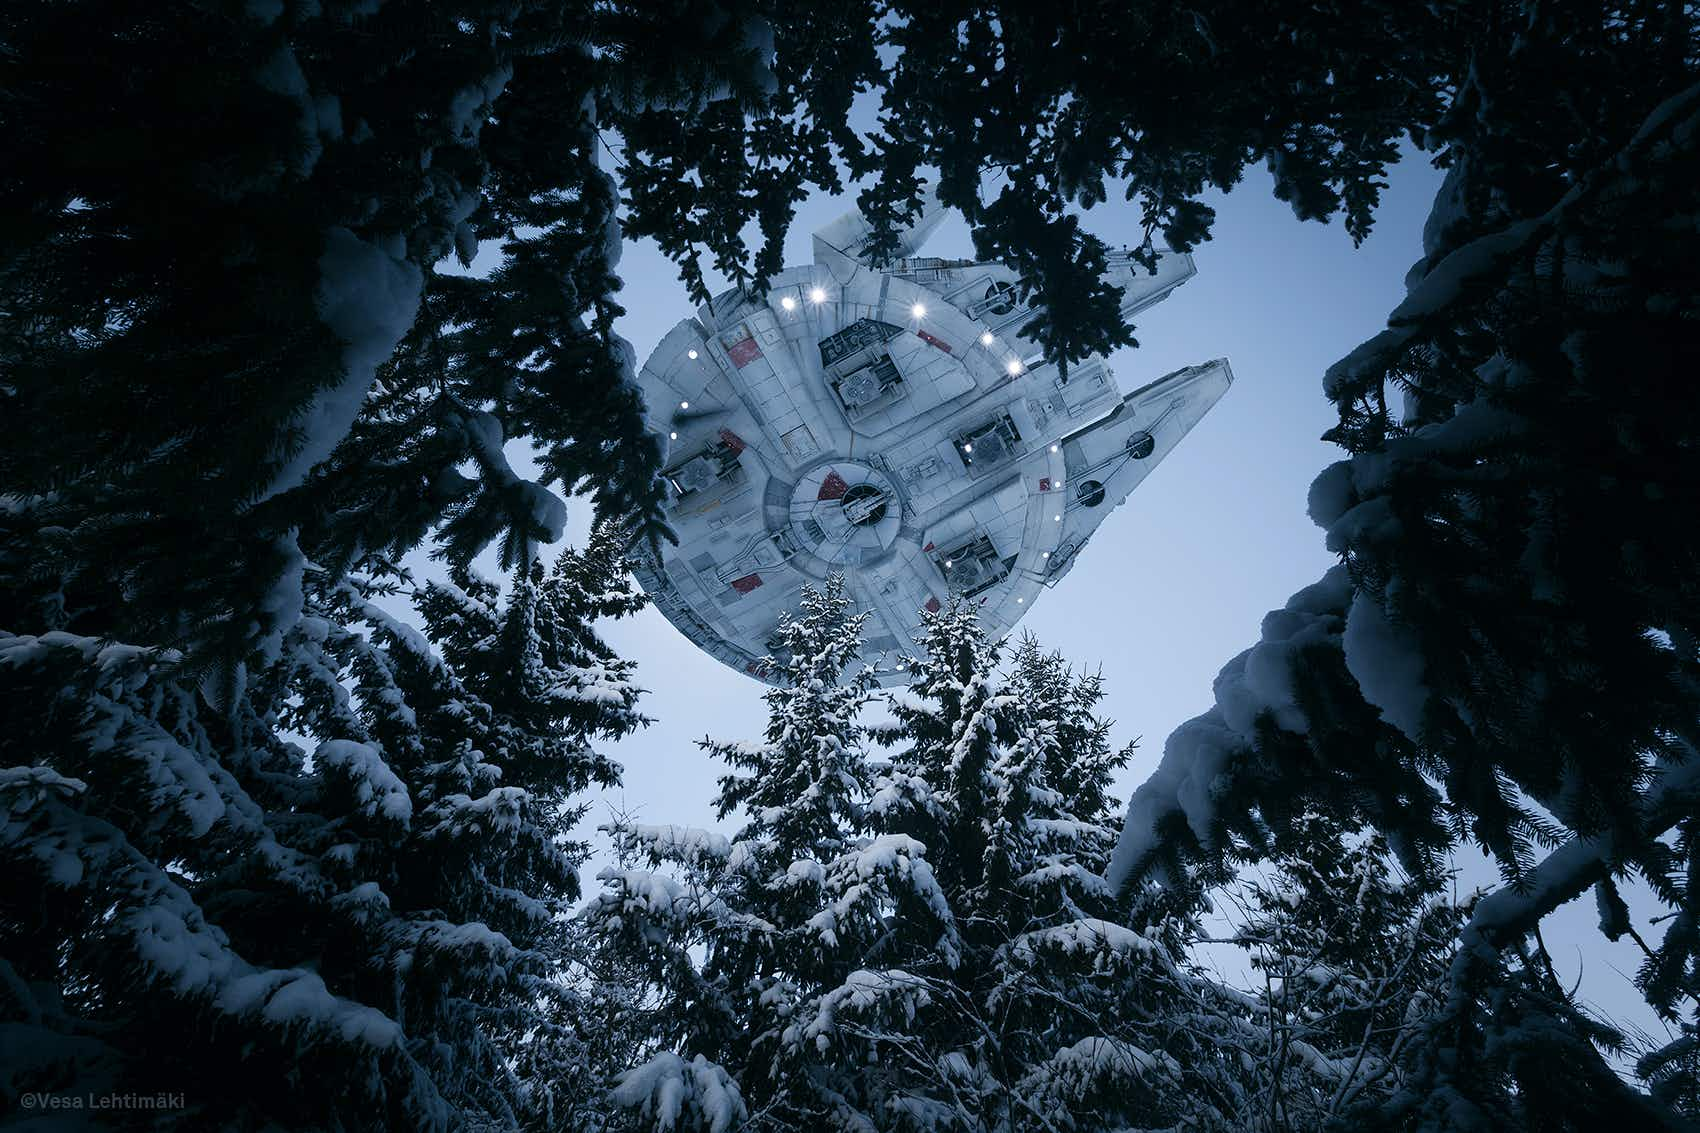 Have Star Wars spaceships been spotted flying across Helsinki?